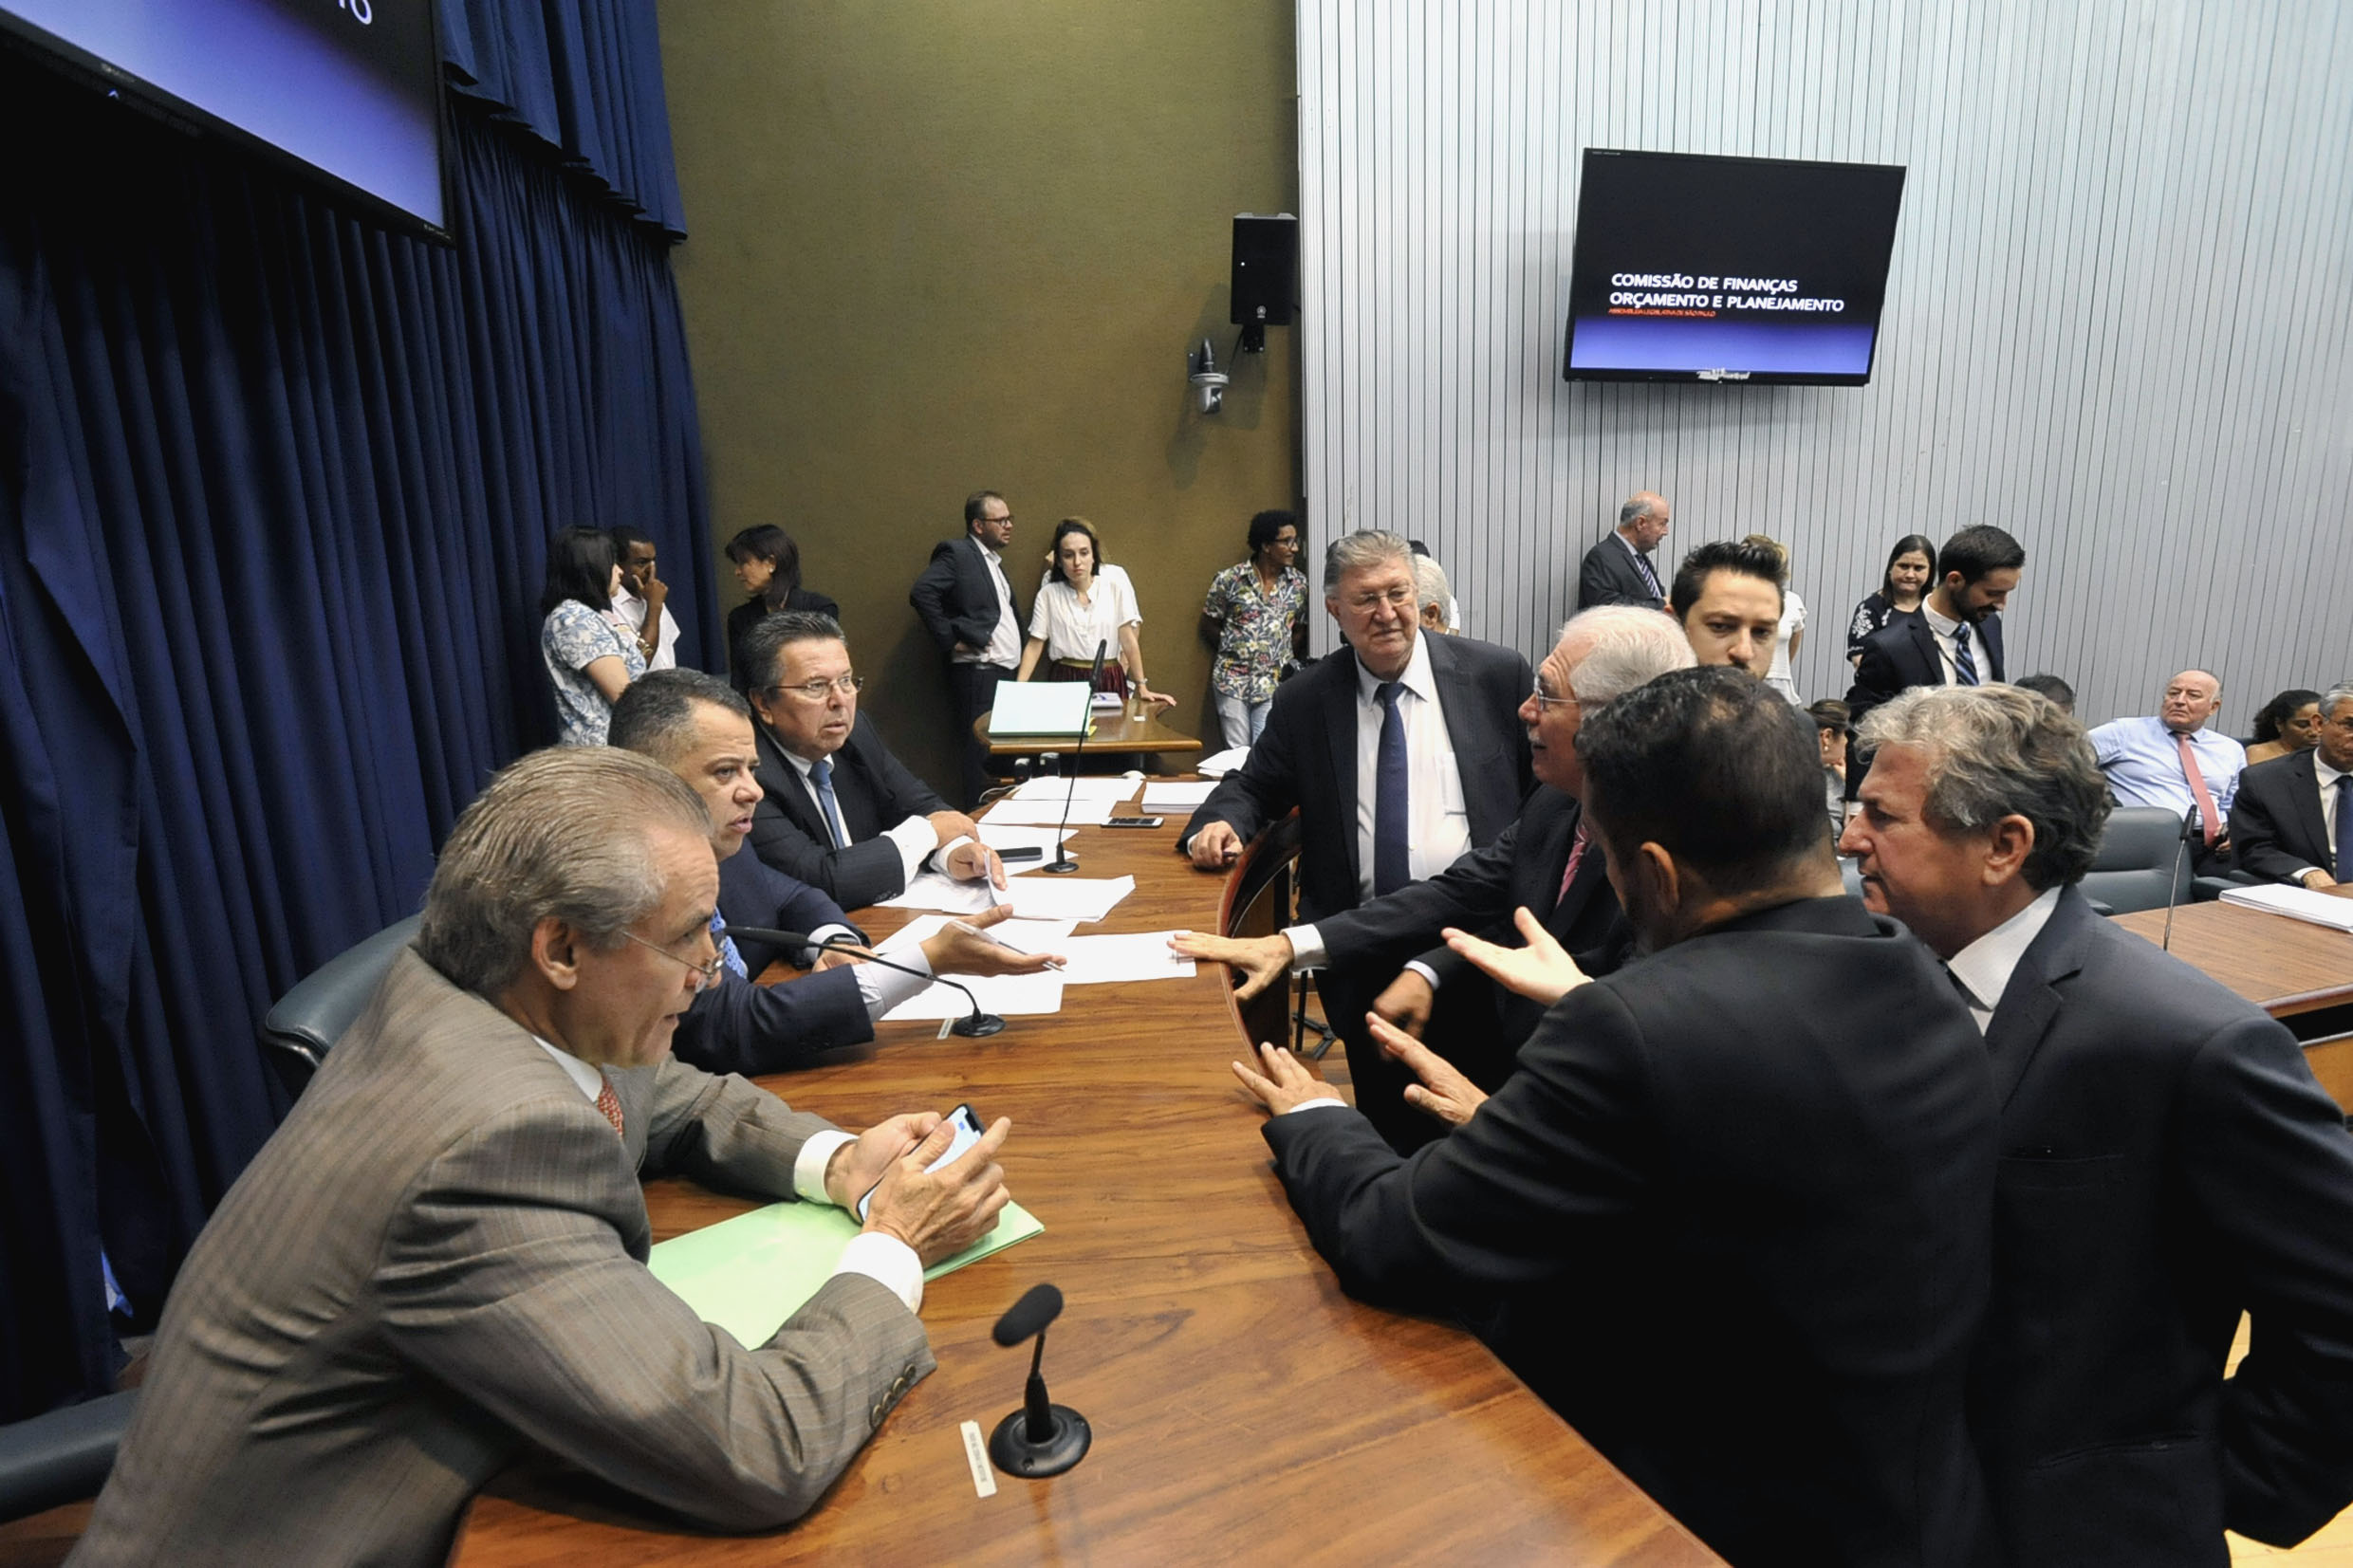 Parlamentares na comissão <a style='float:right' href='https://www3.al.sp.gov.br/repositorio/noticia/N-12-2018/fg228739.jpg' target=_blank><img src='/_img/material-file-download-white.png' width='14px' alt='Clique para baixar a imagem'></a>